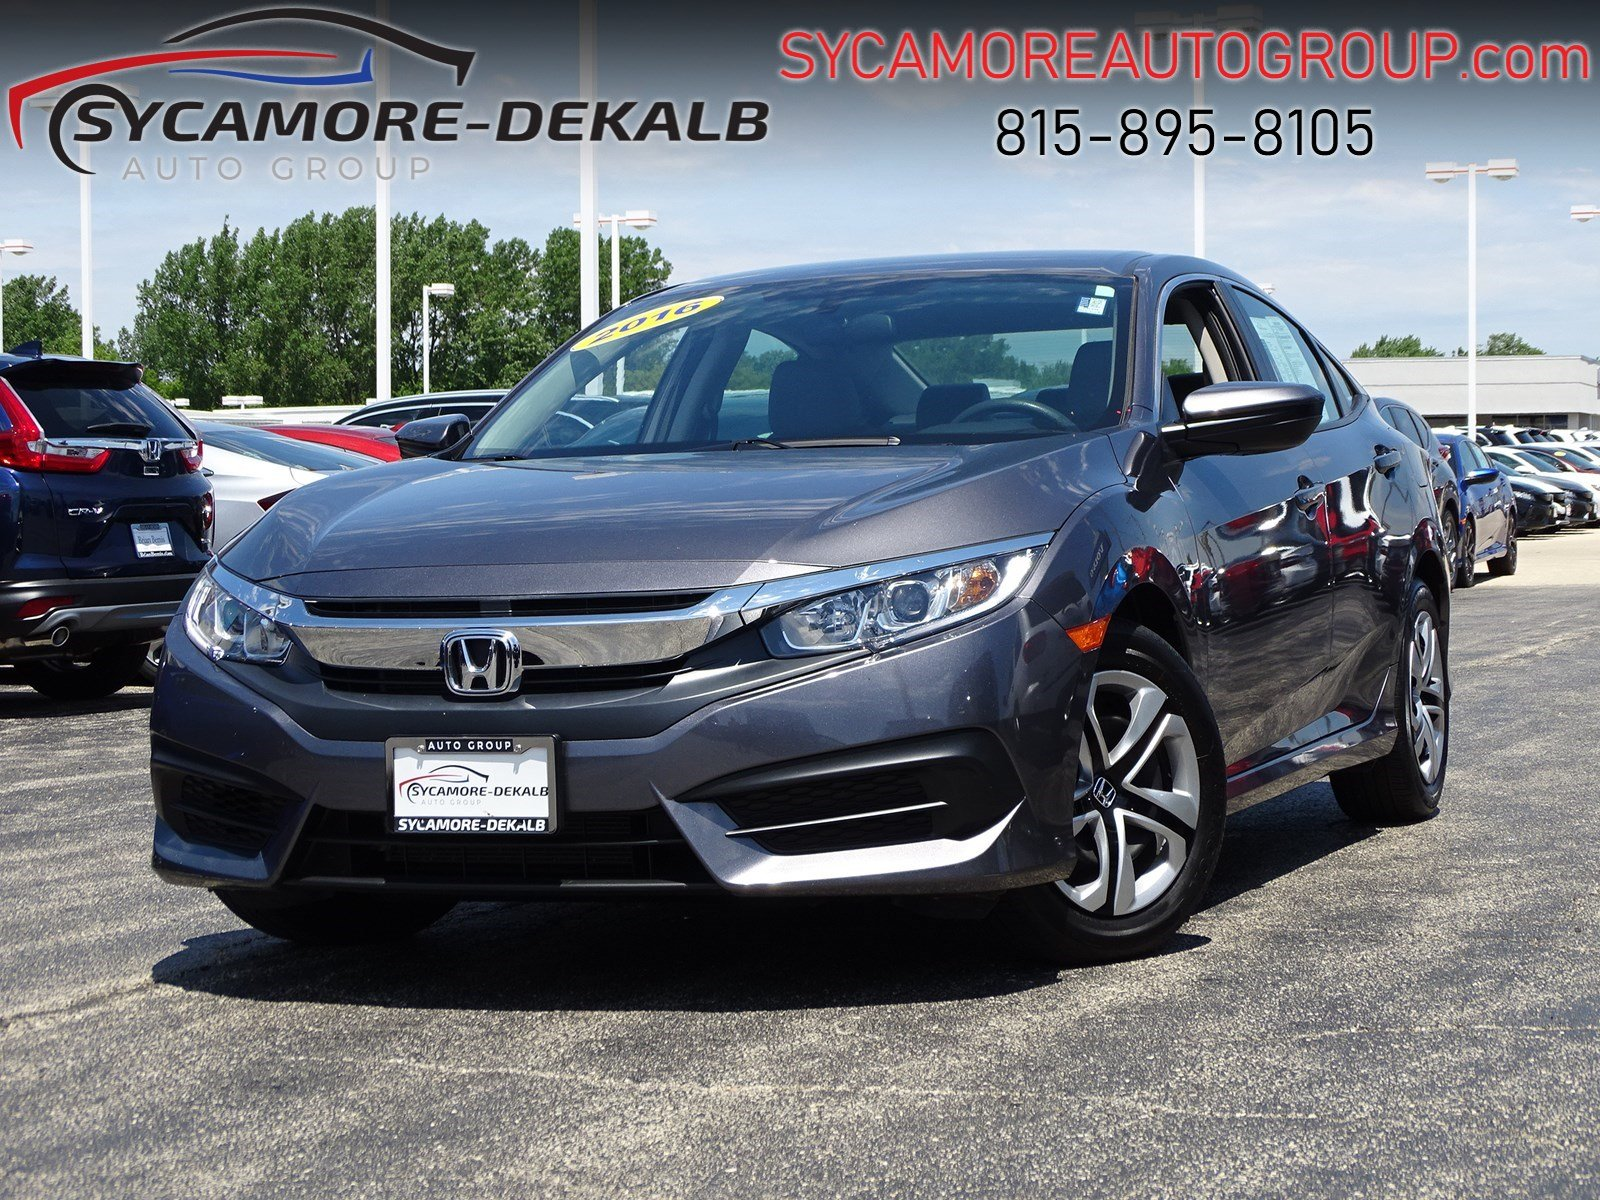 Certified Pre Owned Honda >> Certified Pre Owned 2016 Honda Civic Sedan Lx Fwd 4dr Car